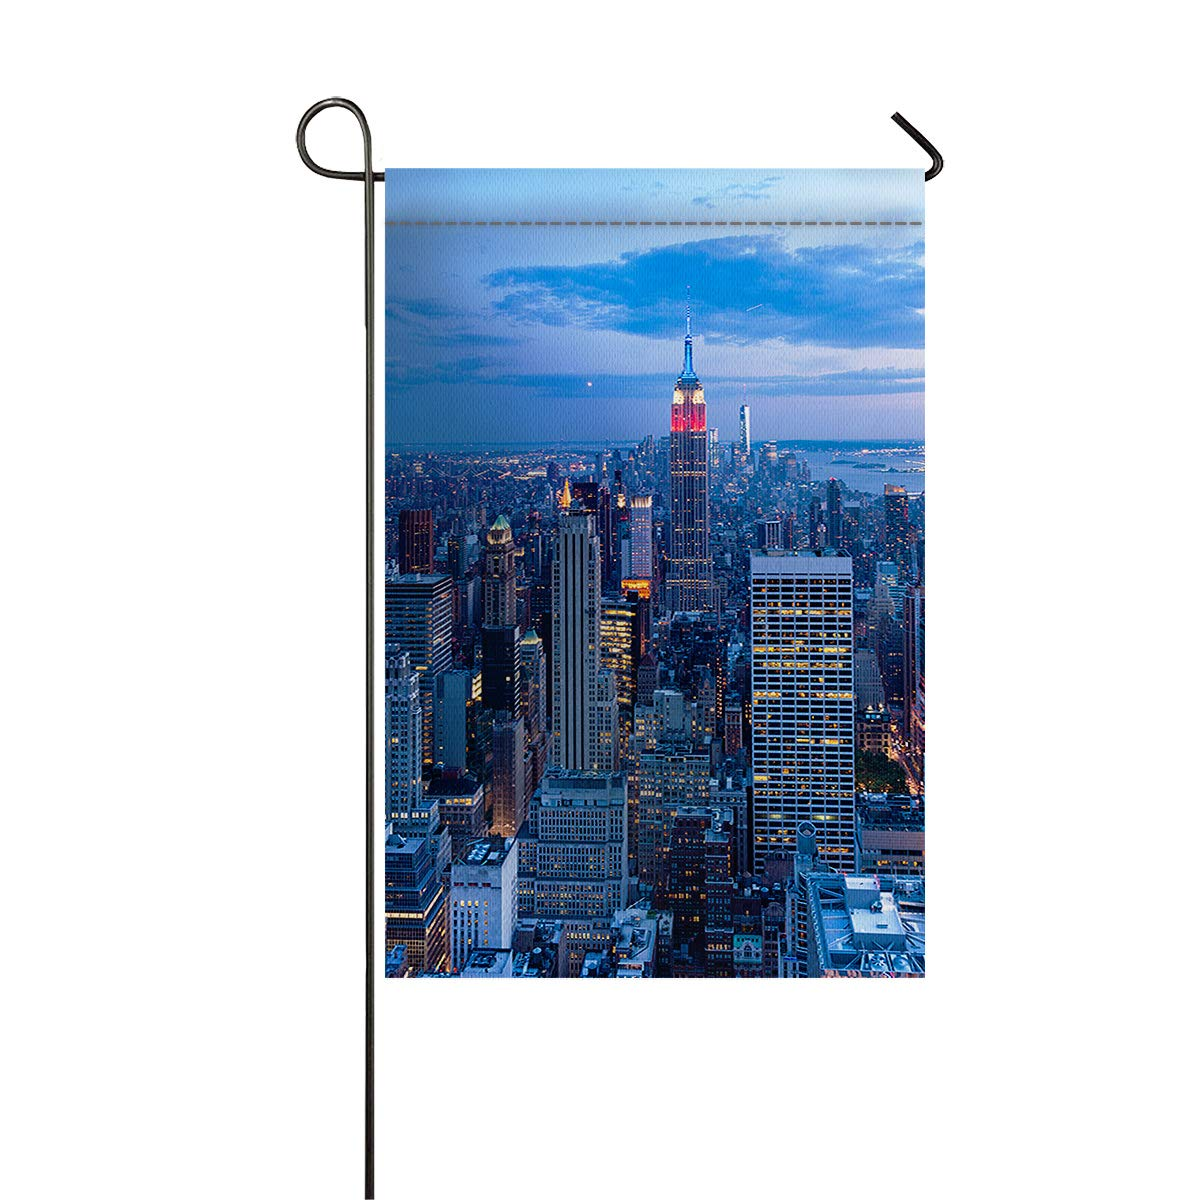 """Image Curtain Double Sided Garden Flags for Home and House 28""""x40"""" Polyester Durable Outdoor Yard Flags, Decorative House Yard Flag Manhattan"""